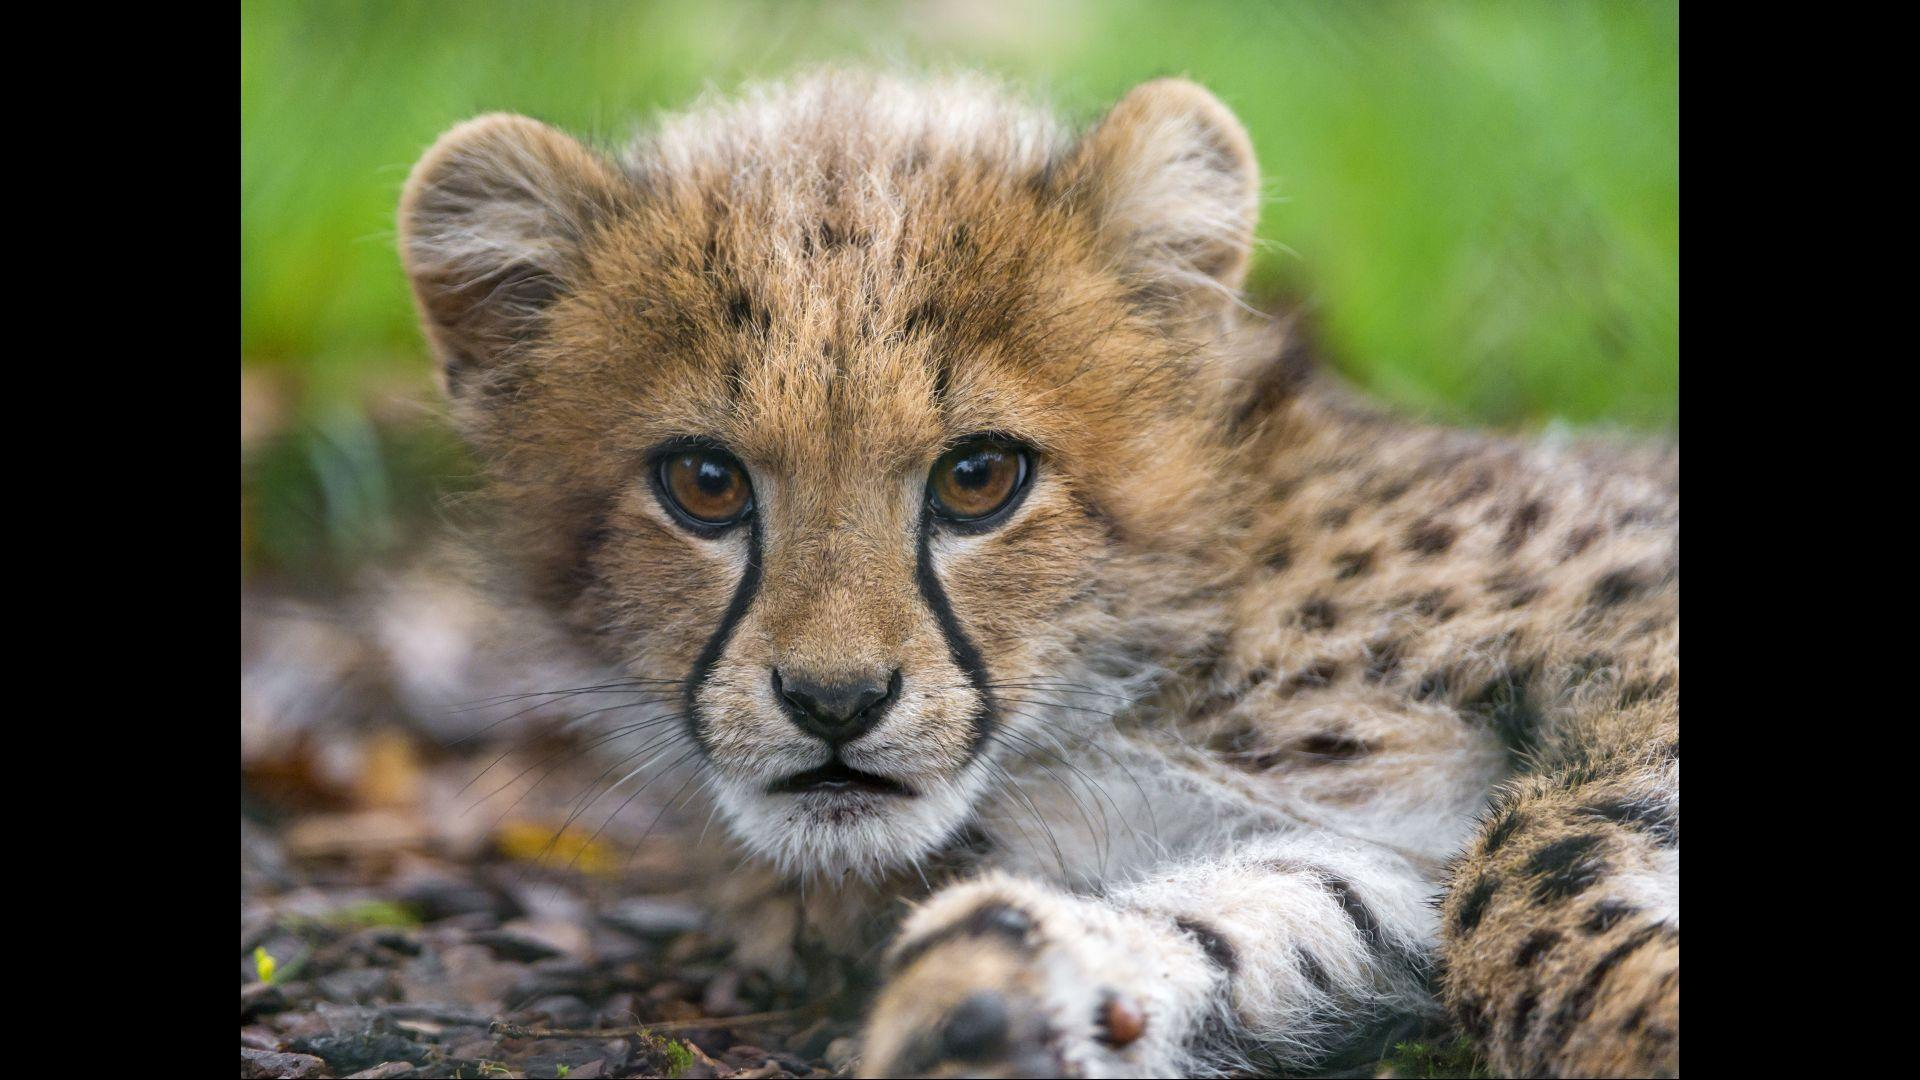 Baby Cheetah Wallpaper For Android Apk Download